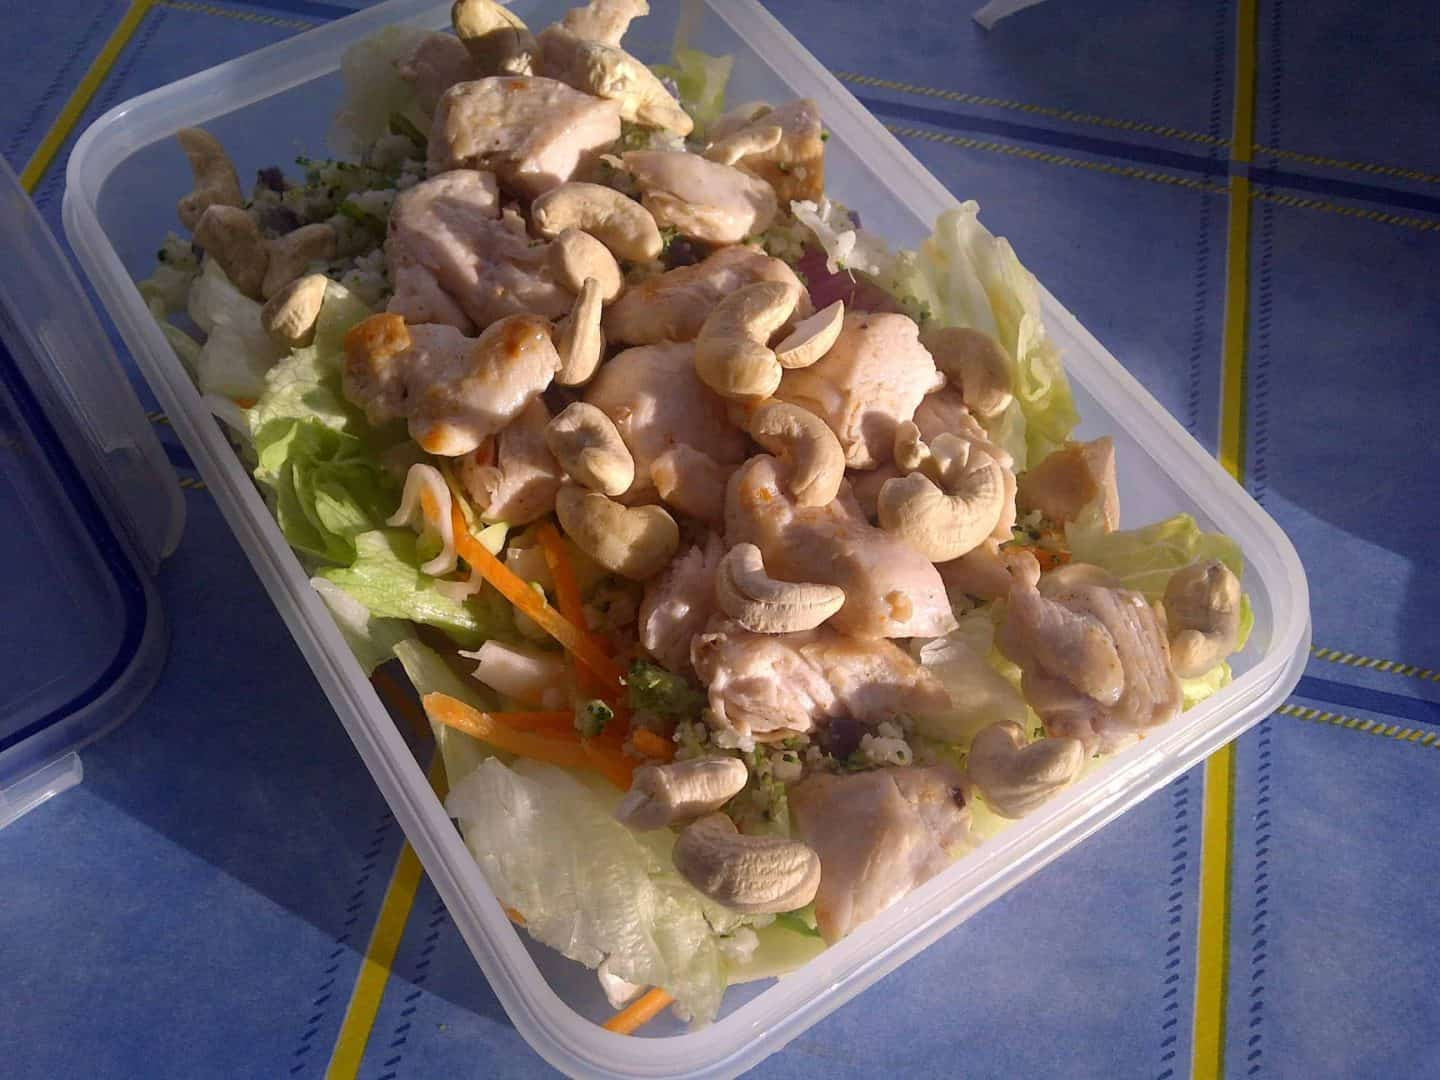 Getting fit gluten free style: thai curry, lazy training and cashew nuts